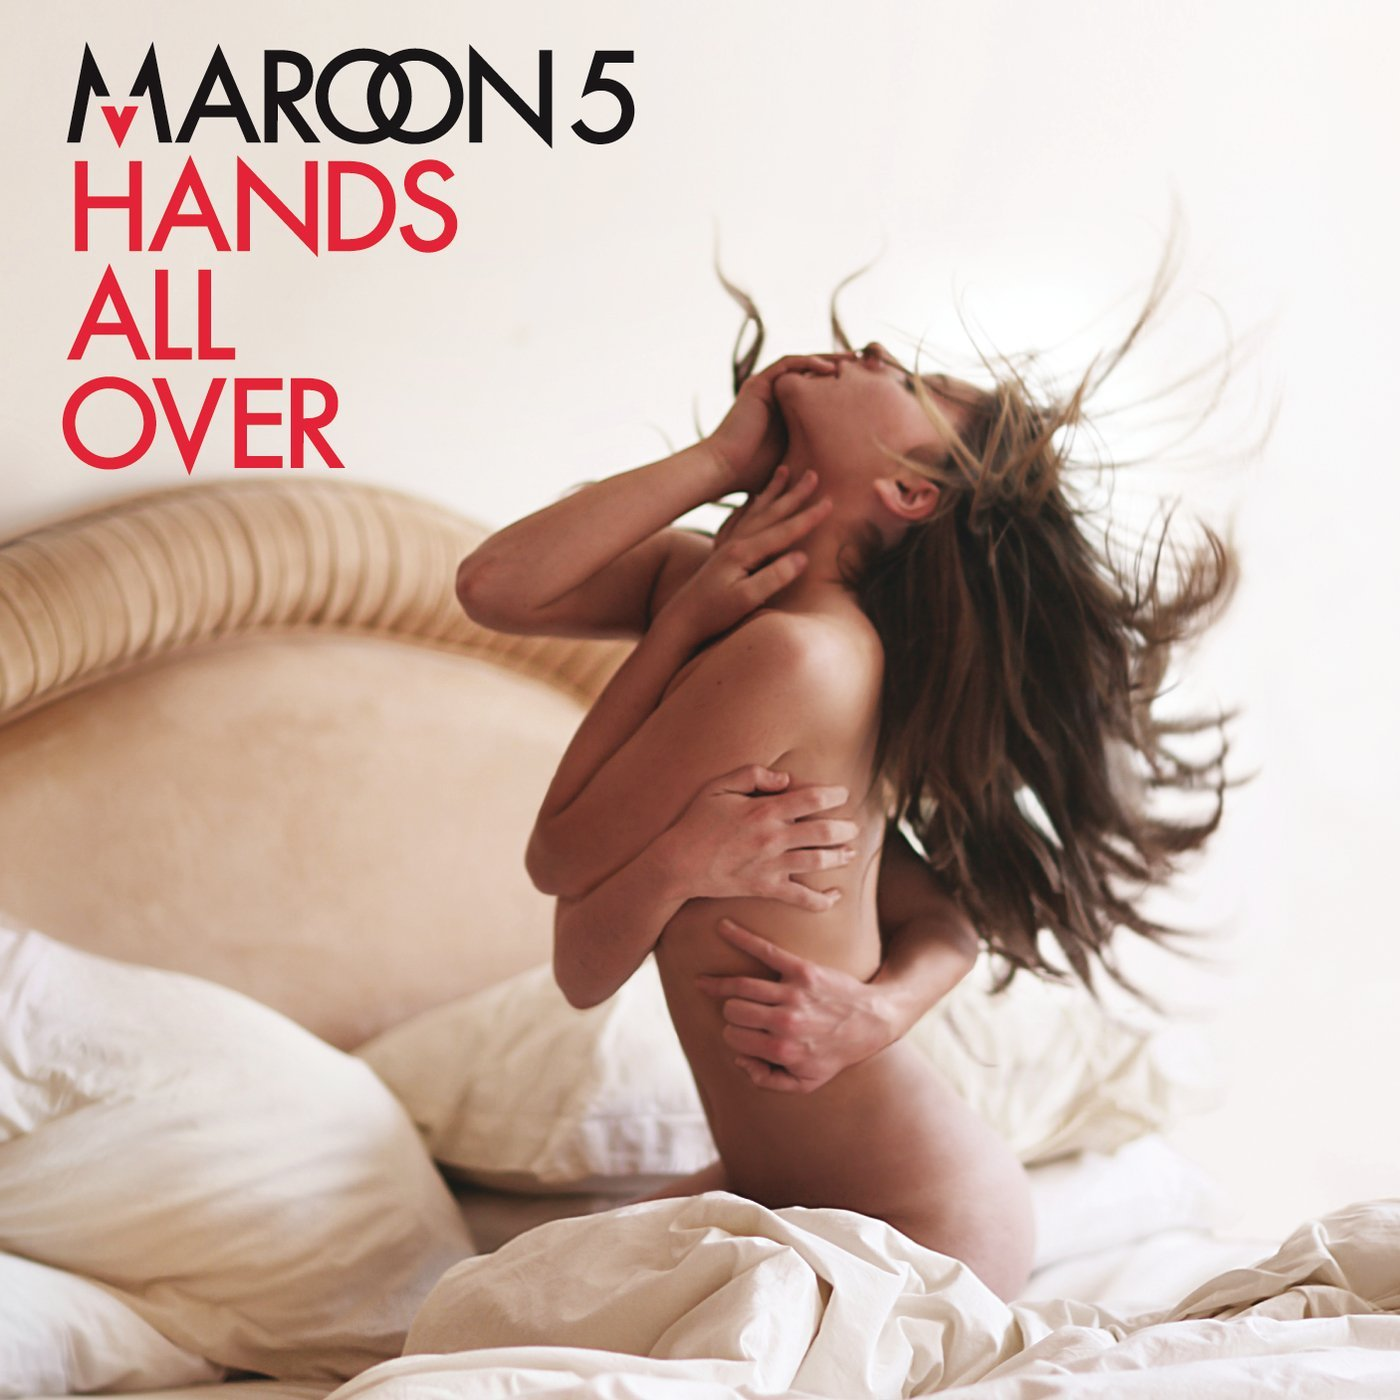 Maroon 5, Hands All Over